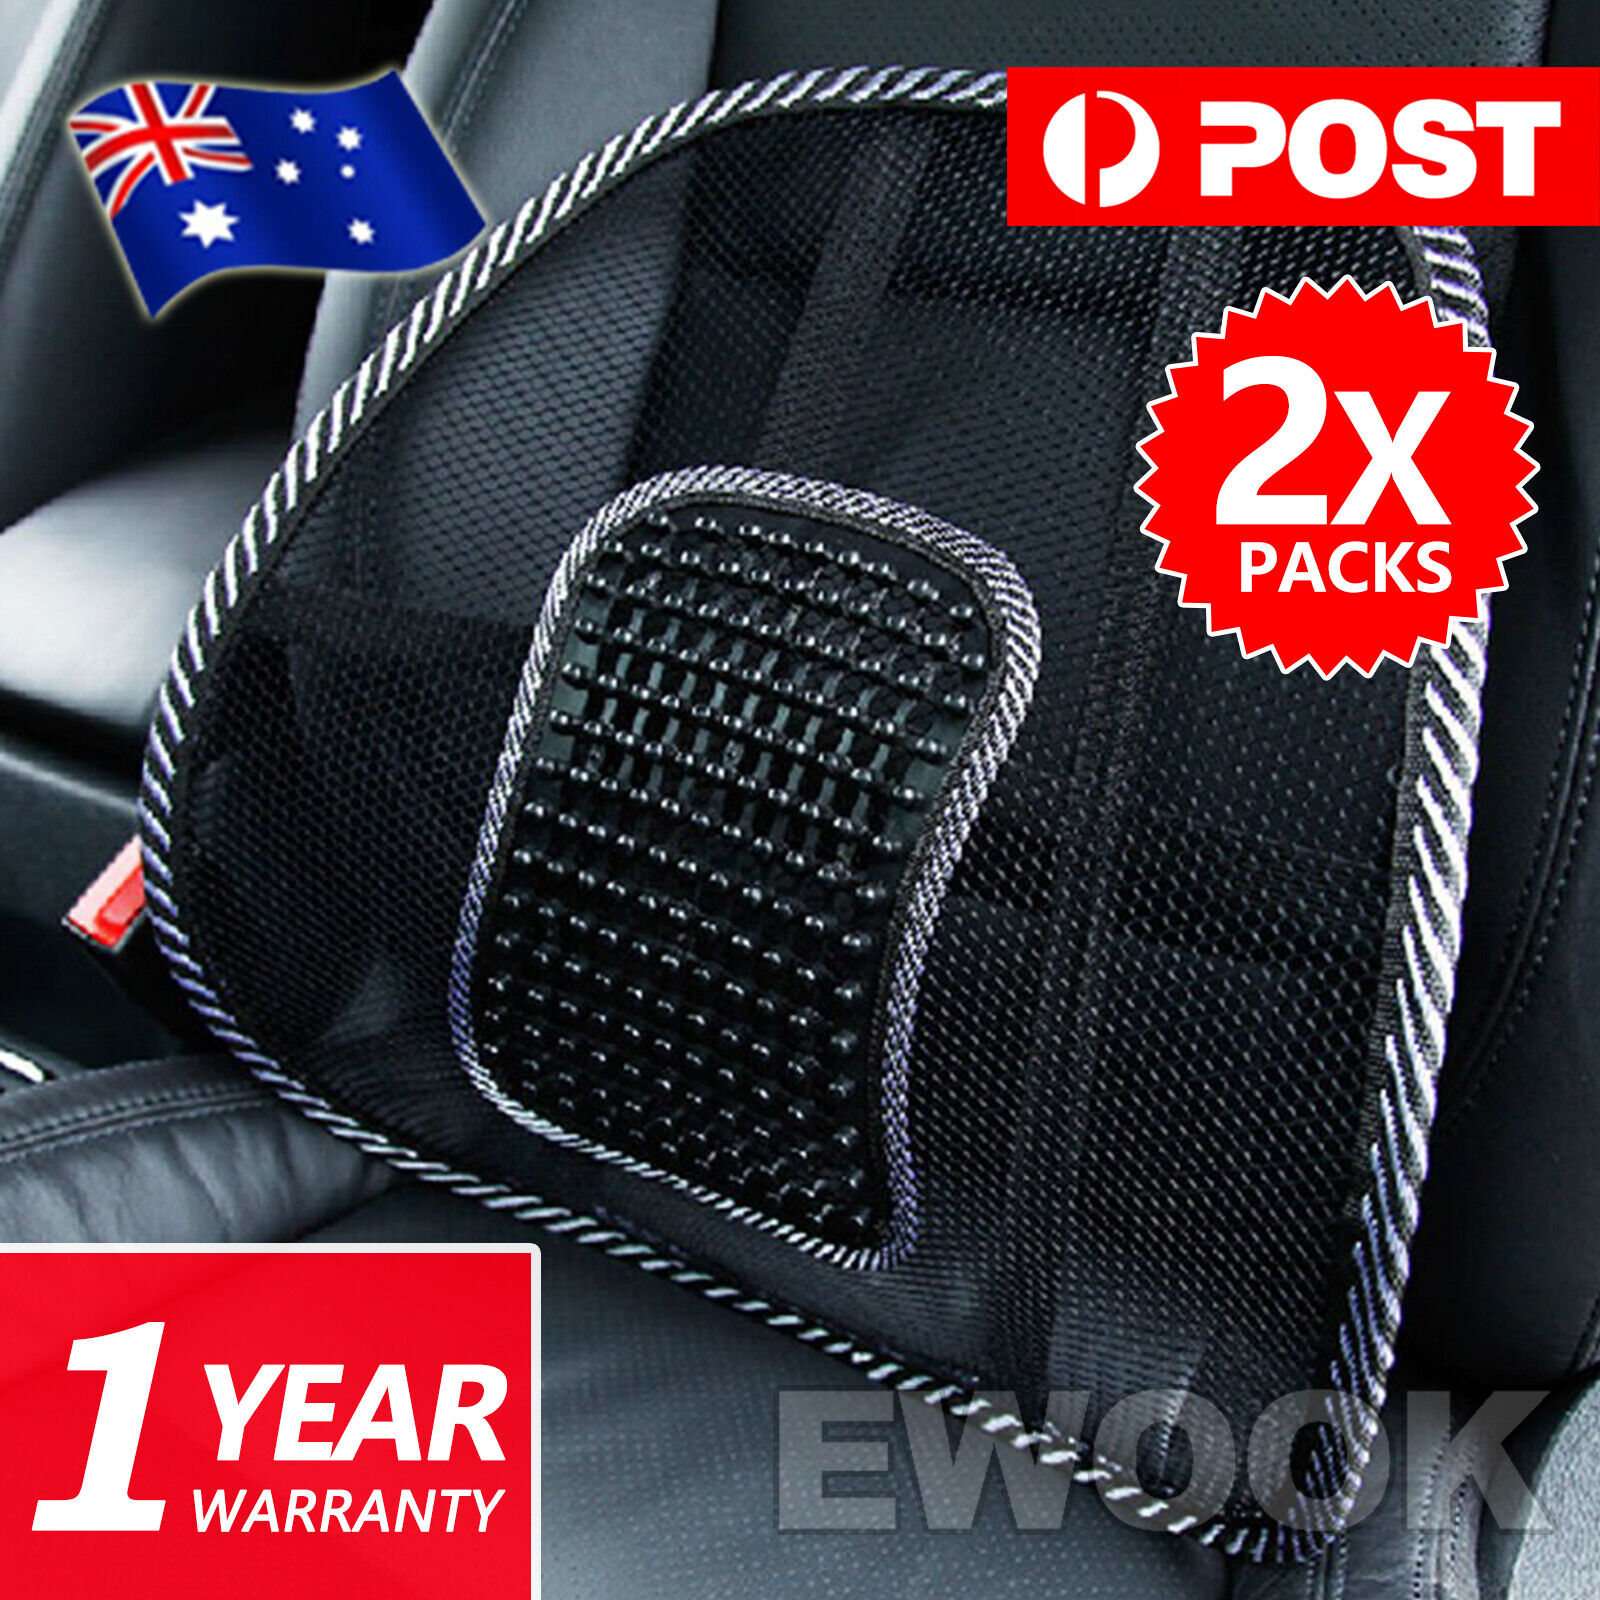 2x mesh lumbar back support for office home car seat chair truck pillow cushion aud. Black Bedroom Furniture Sets. Home Design Ideas